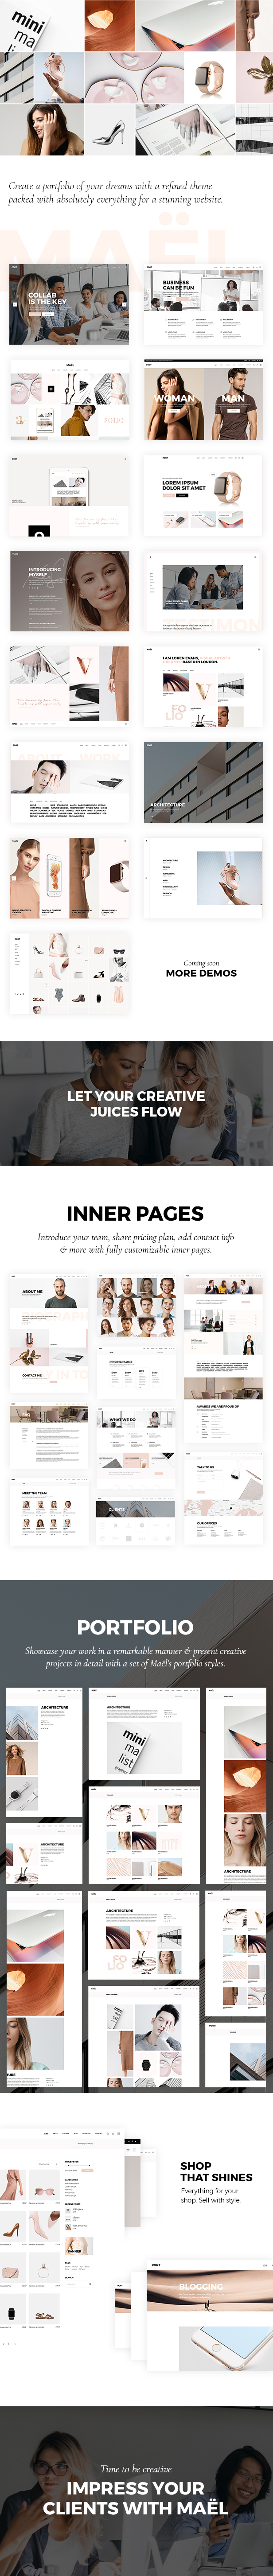 Maël - Modern Creative Agency Theme - 1